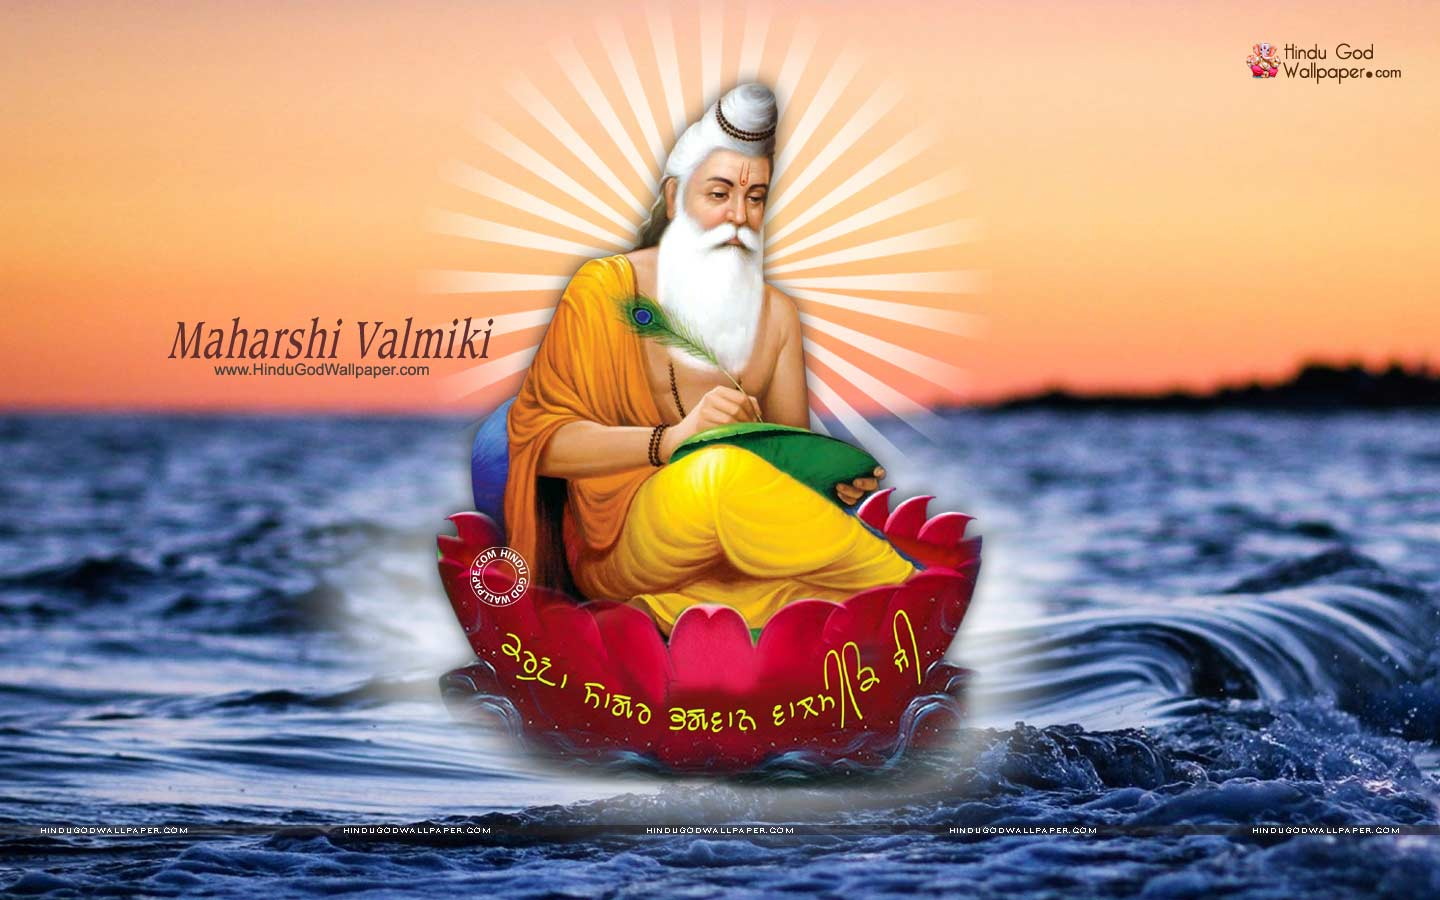 Hd wallpaper valmiki - Hd Wallpaper Valmiki Maharishi Valmiki Hd Images